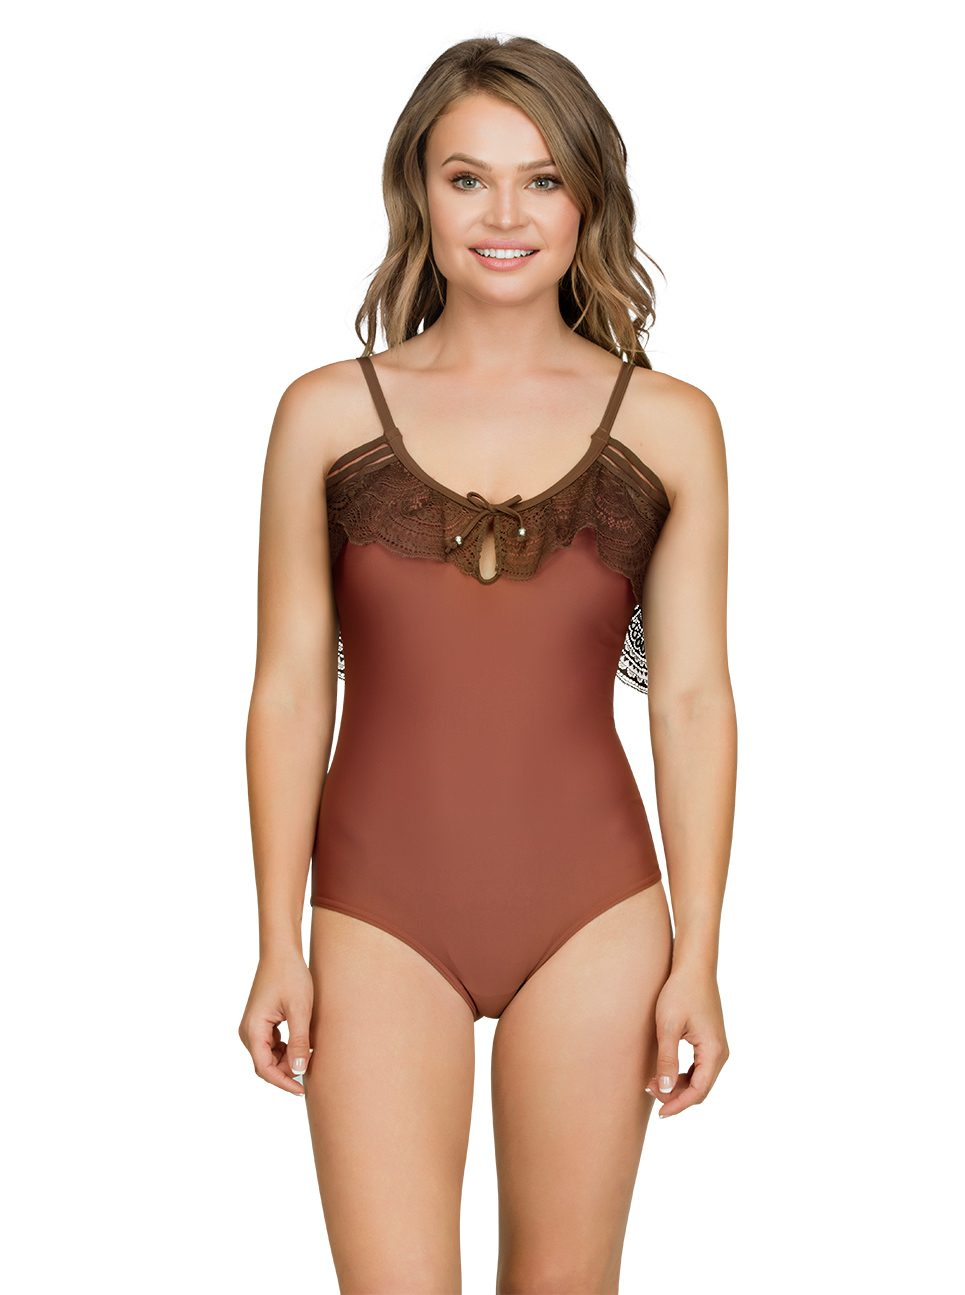 MODBYPARFAIT_Pure_OnePieceSwimsuitS8126_Terracotta_Front